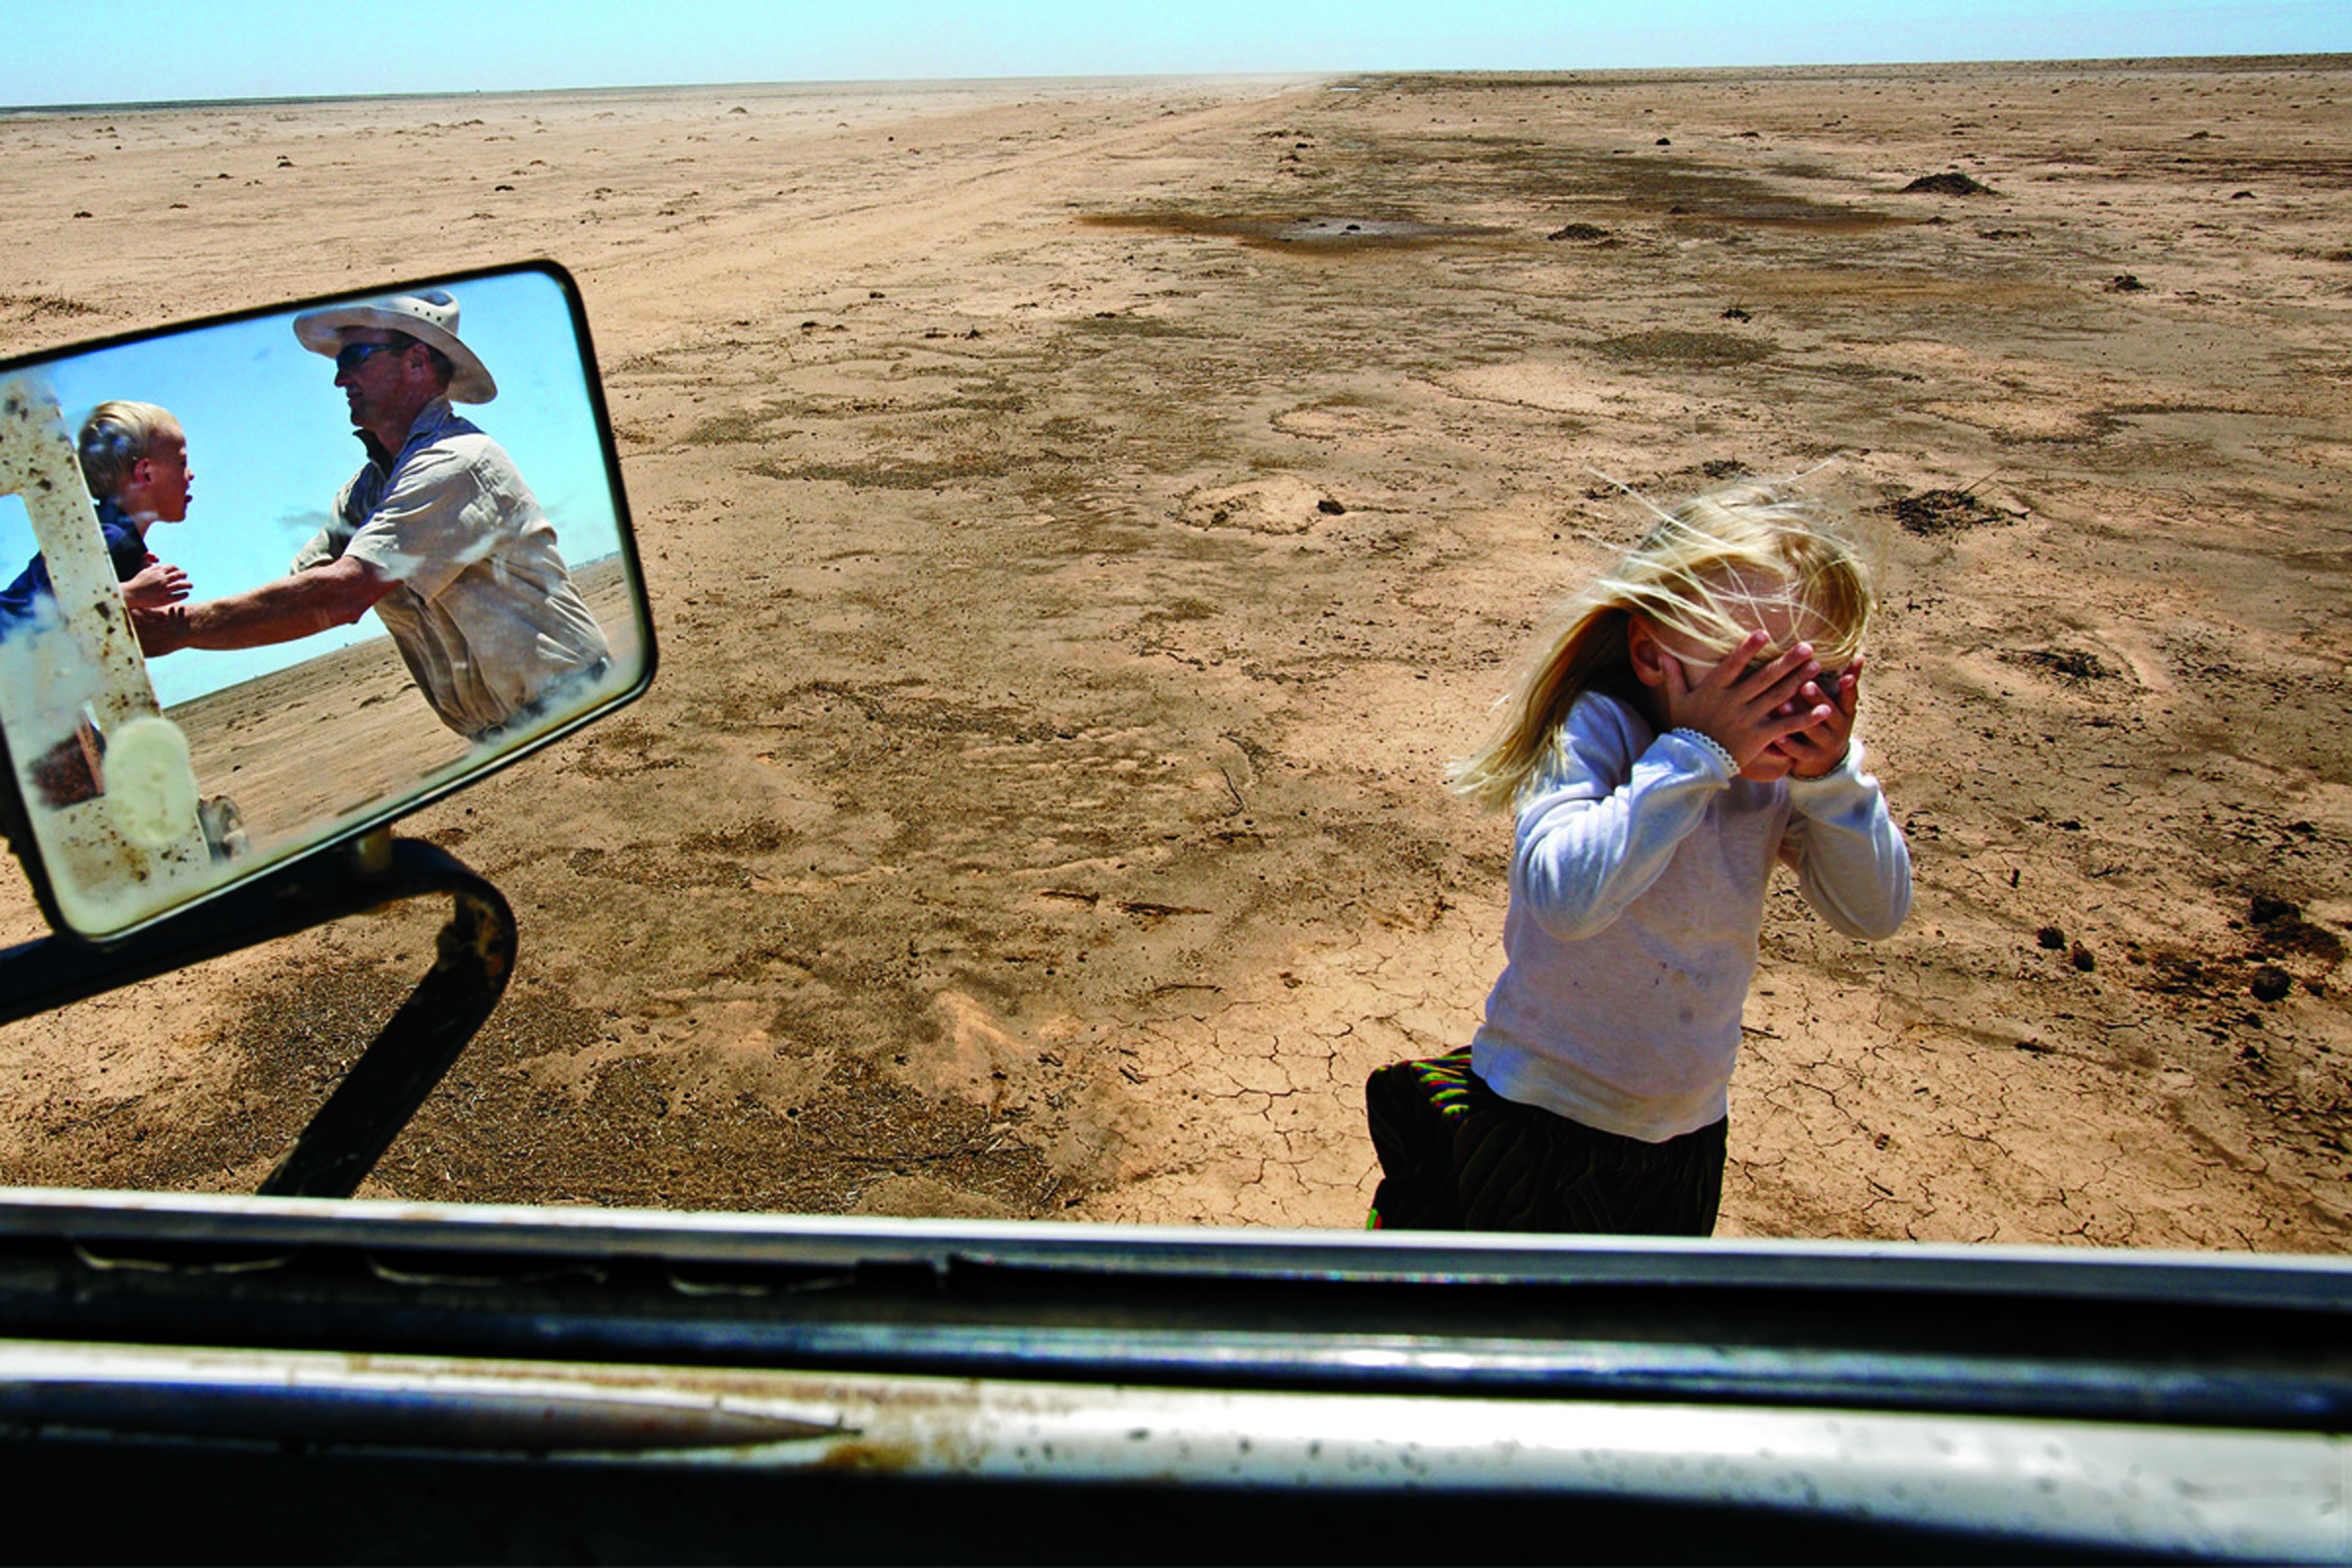 A farmer and his children play in a water-starved field in Australia where his livestock once grazed.